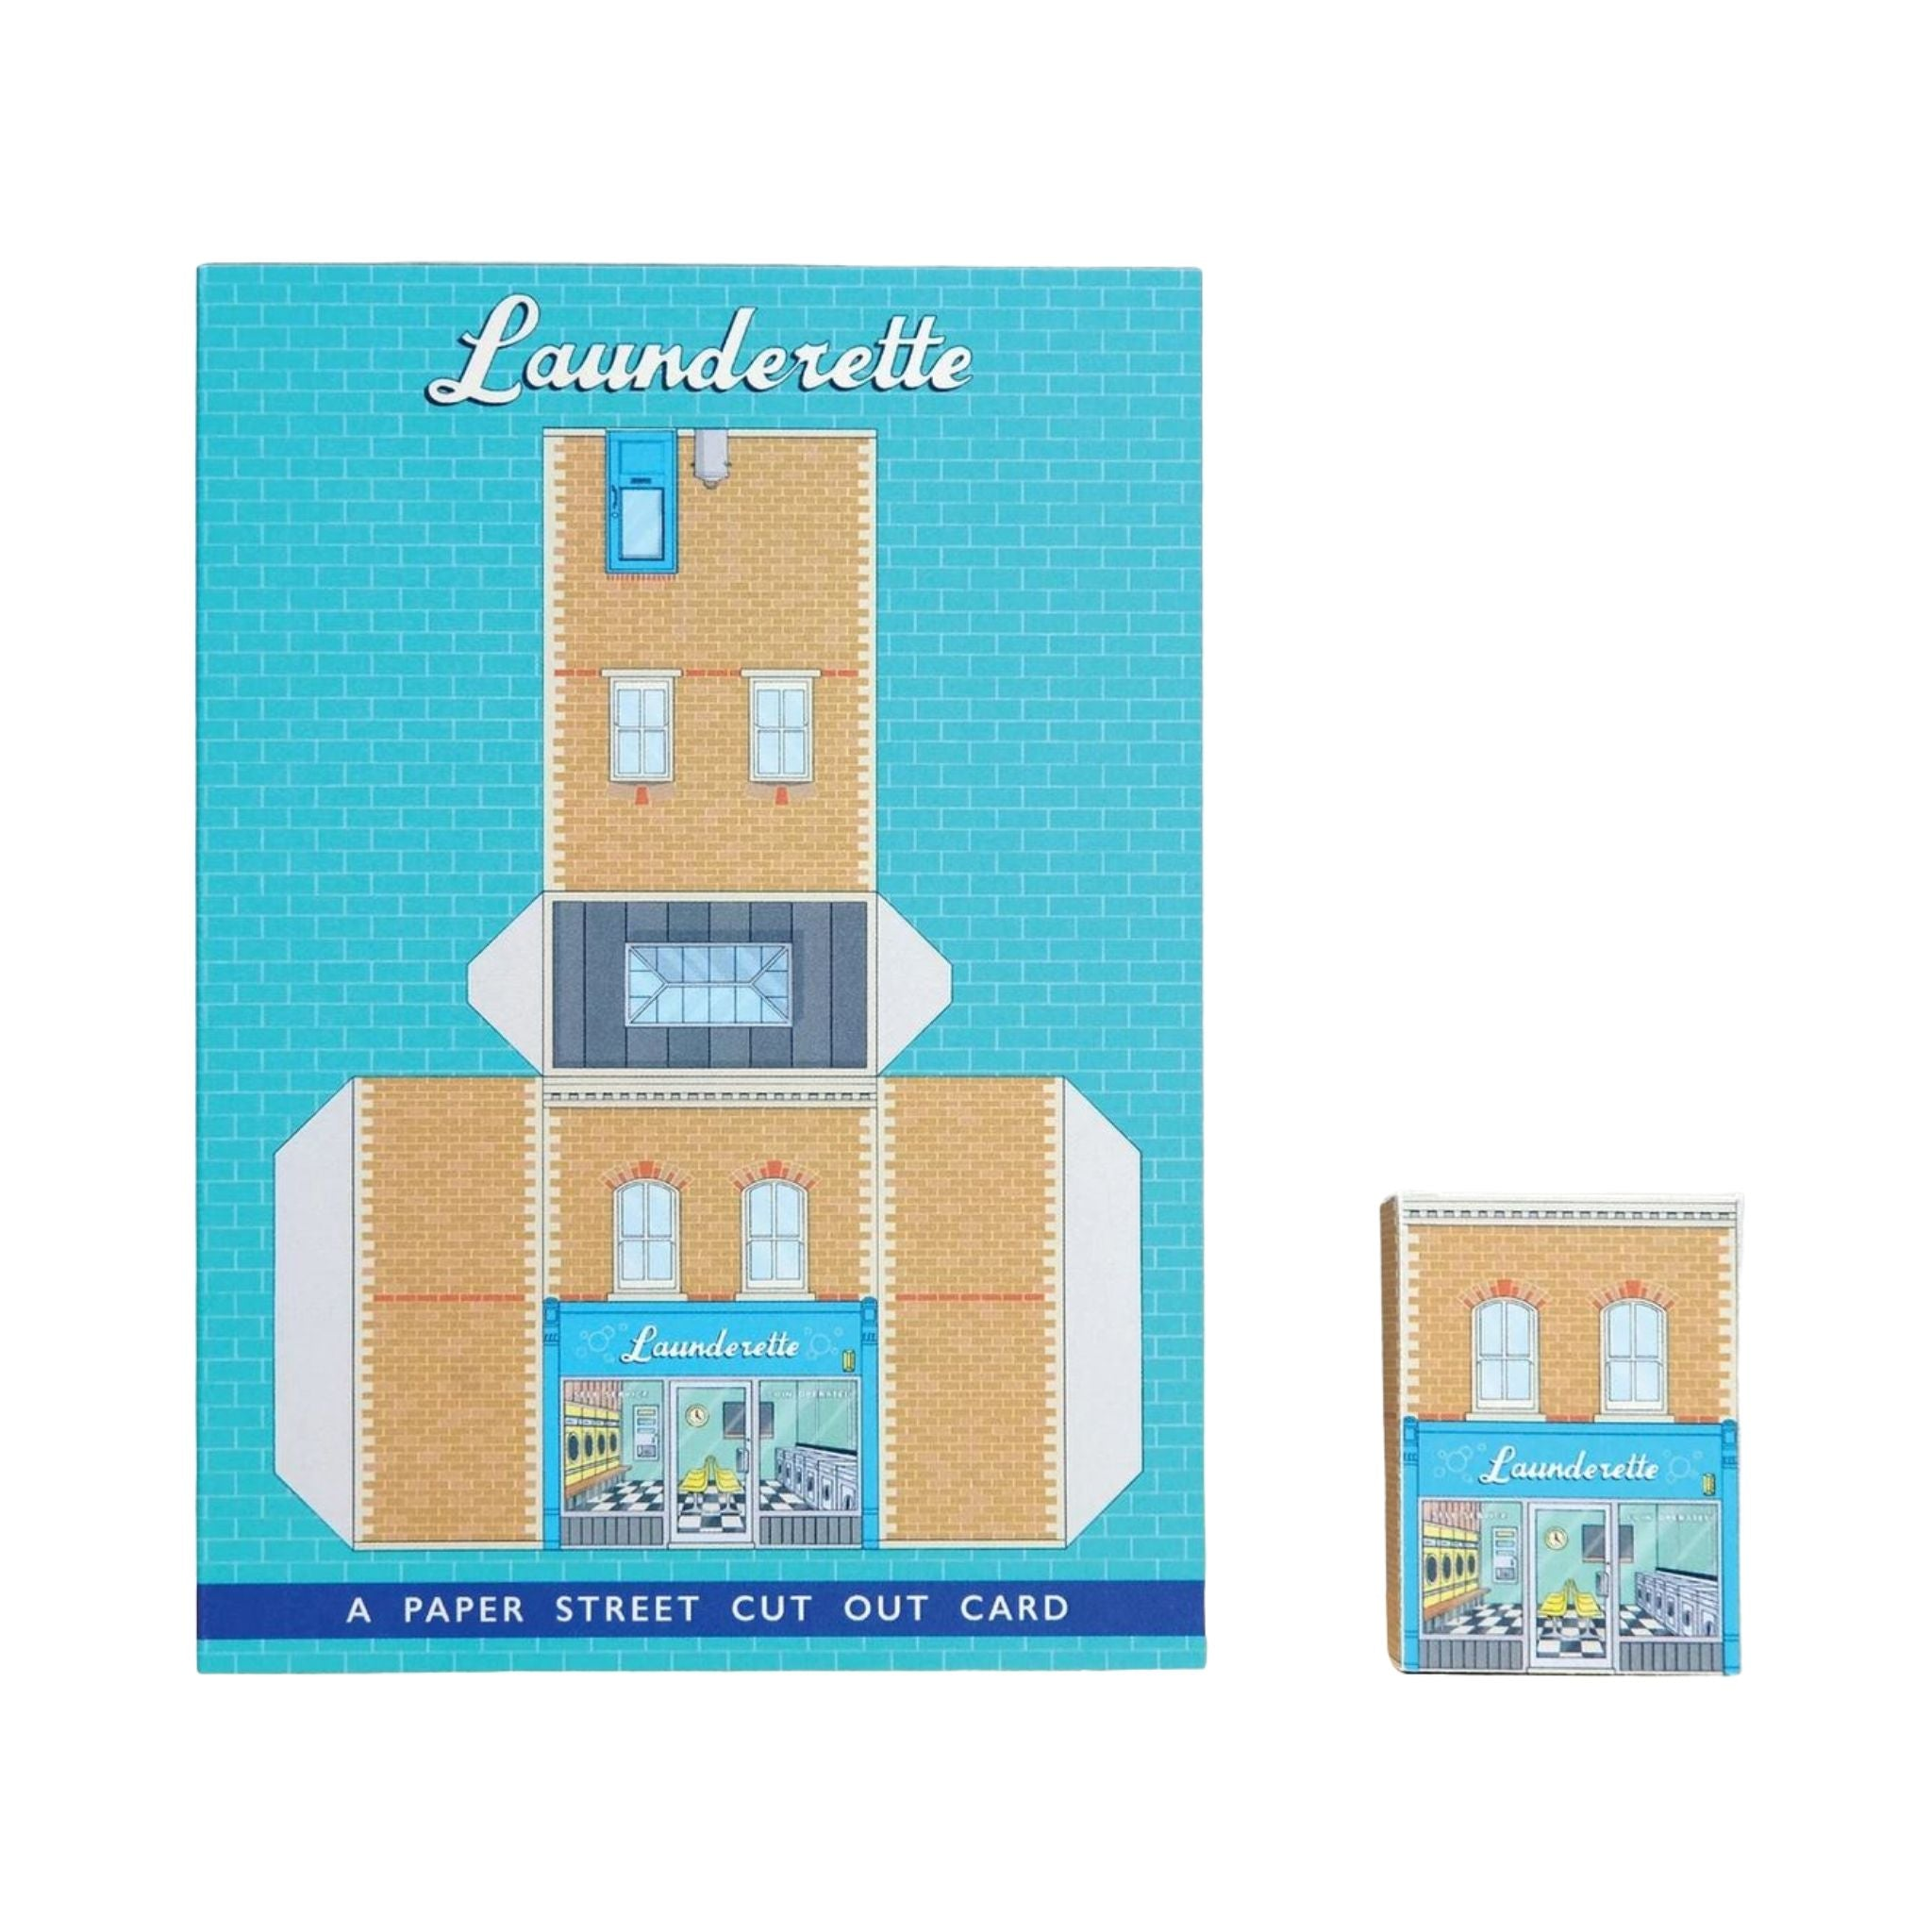 Paper Street Cut Out Card - Launderette